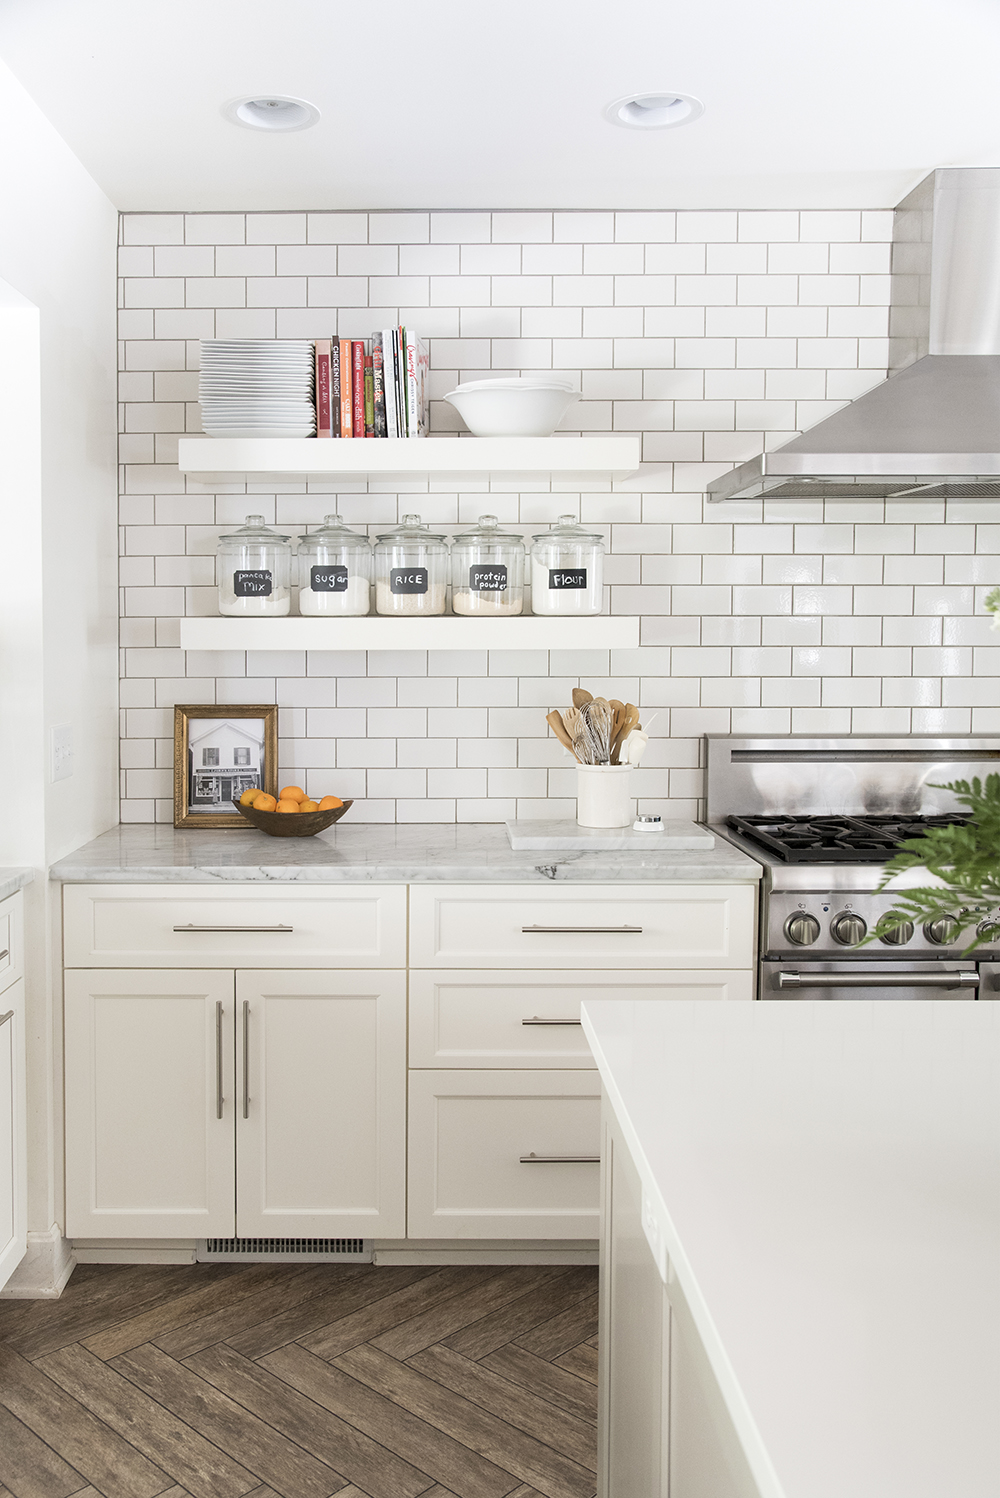 How To Incorporate Floating Shelves In Your Kitchen - Room